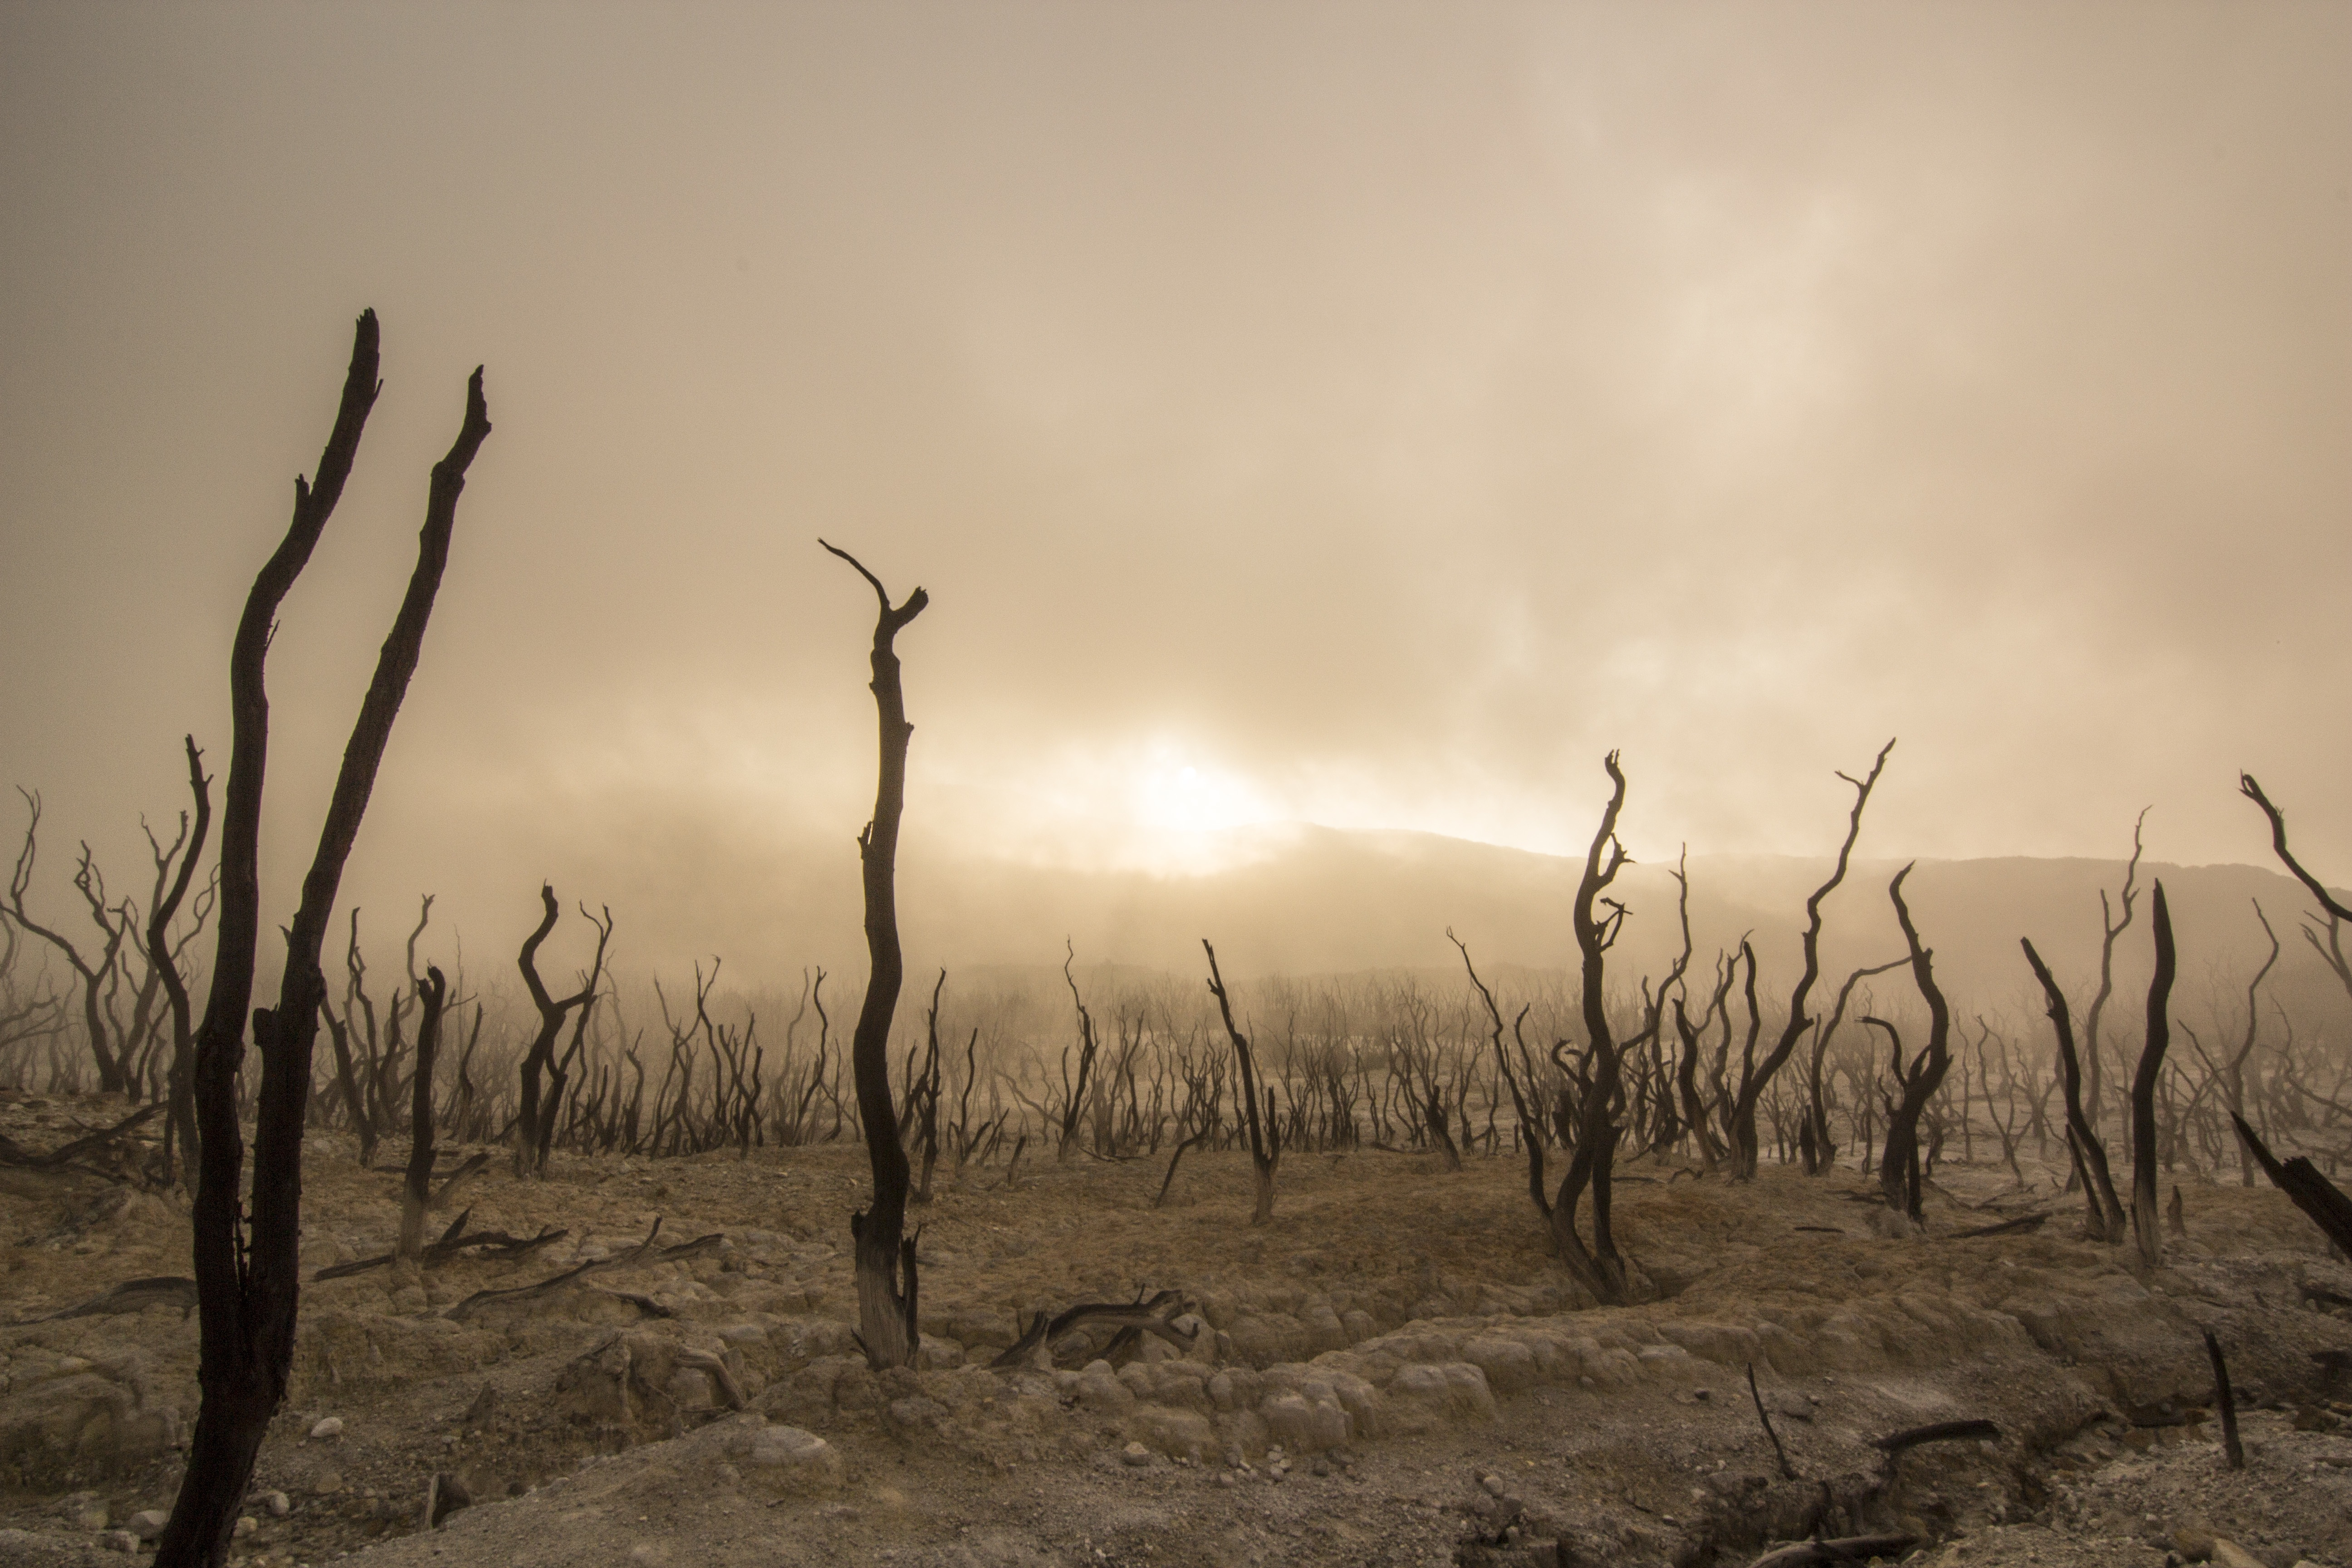 Kota Garut, Indonesia, landscape, martian, trees, dry branches, red, alien, scary